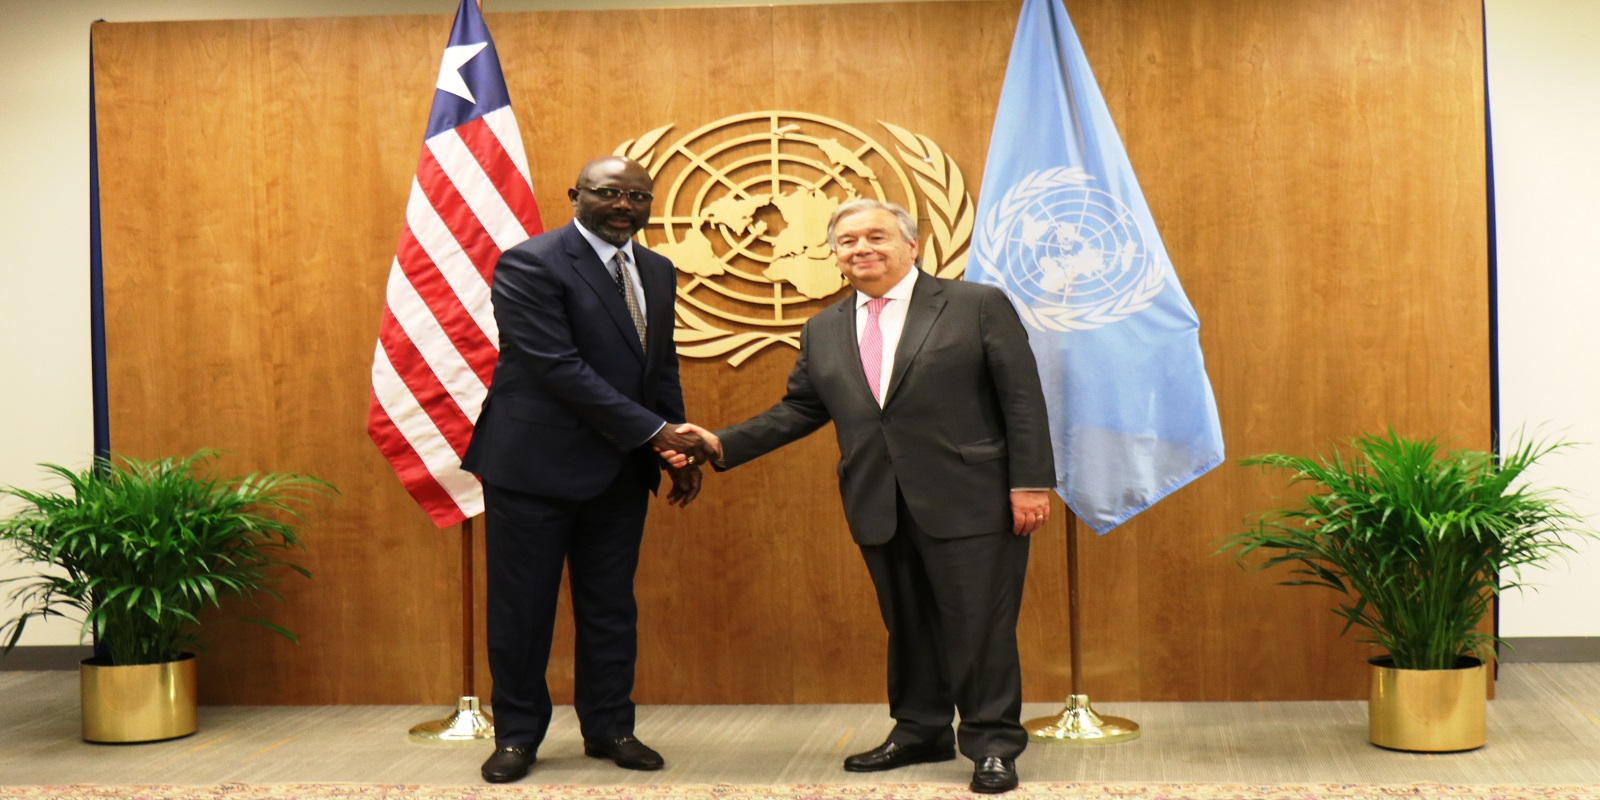 H.E. President Weah and UN Secretary-General Guterres commit to sustenance of peace in Liberia